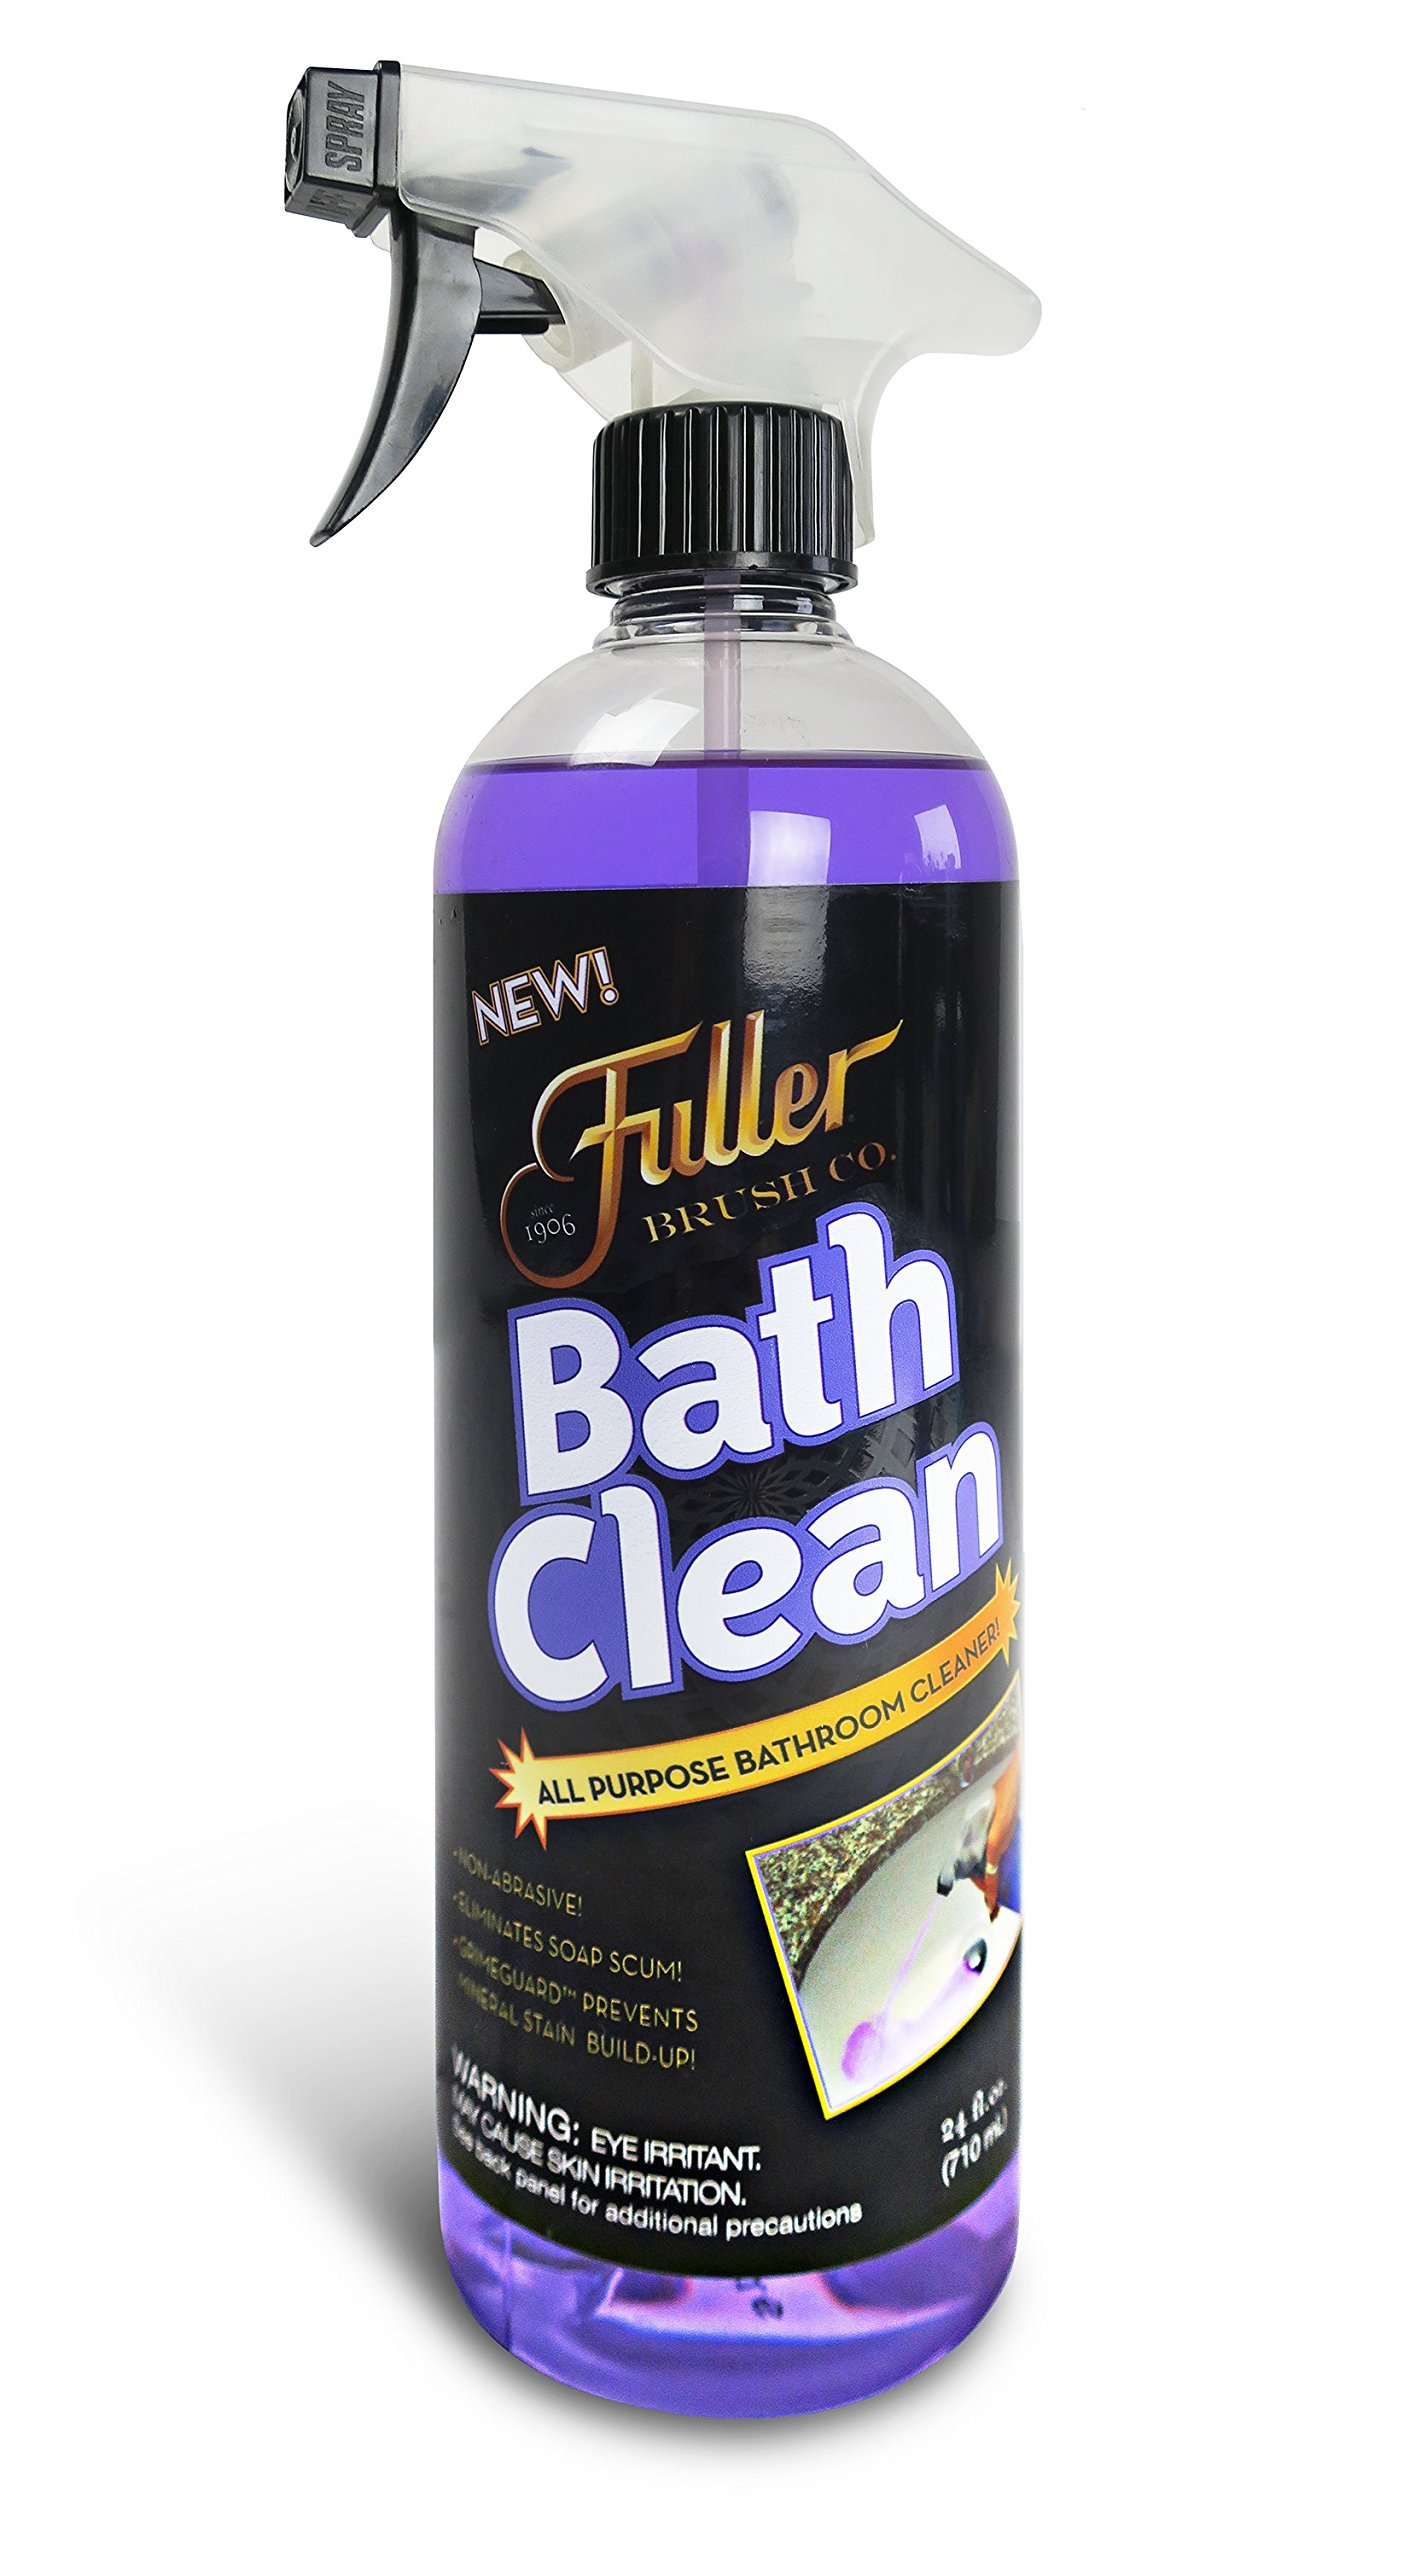 Fuller Brush Bath Clean - Dissolves Tough Soap Scum & Hard Water Stains - Contains Grimegaurd - 24 oz by Fuller Brush (Image #1)